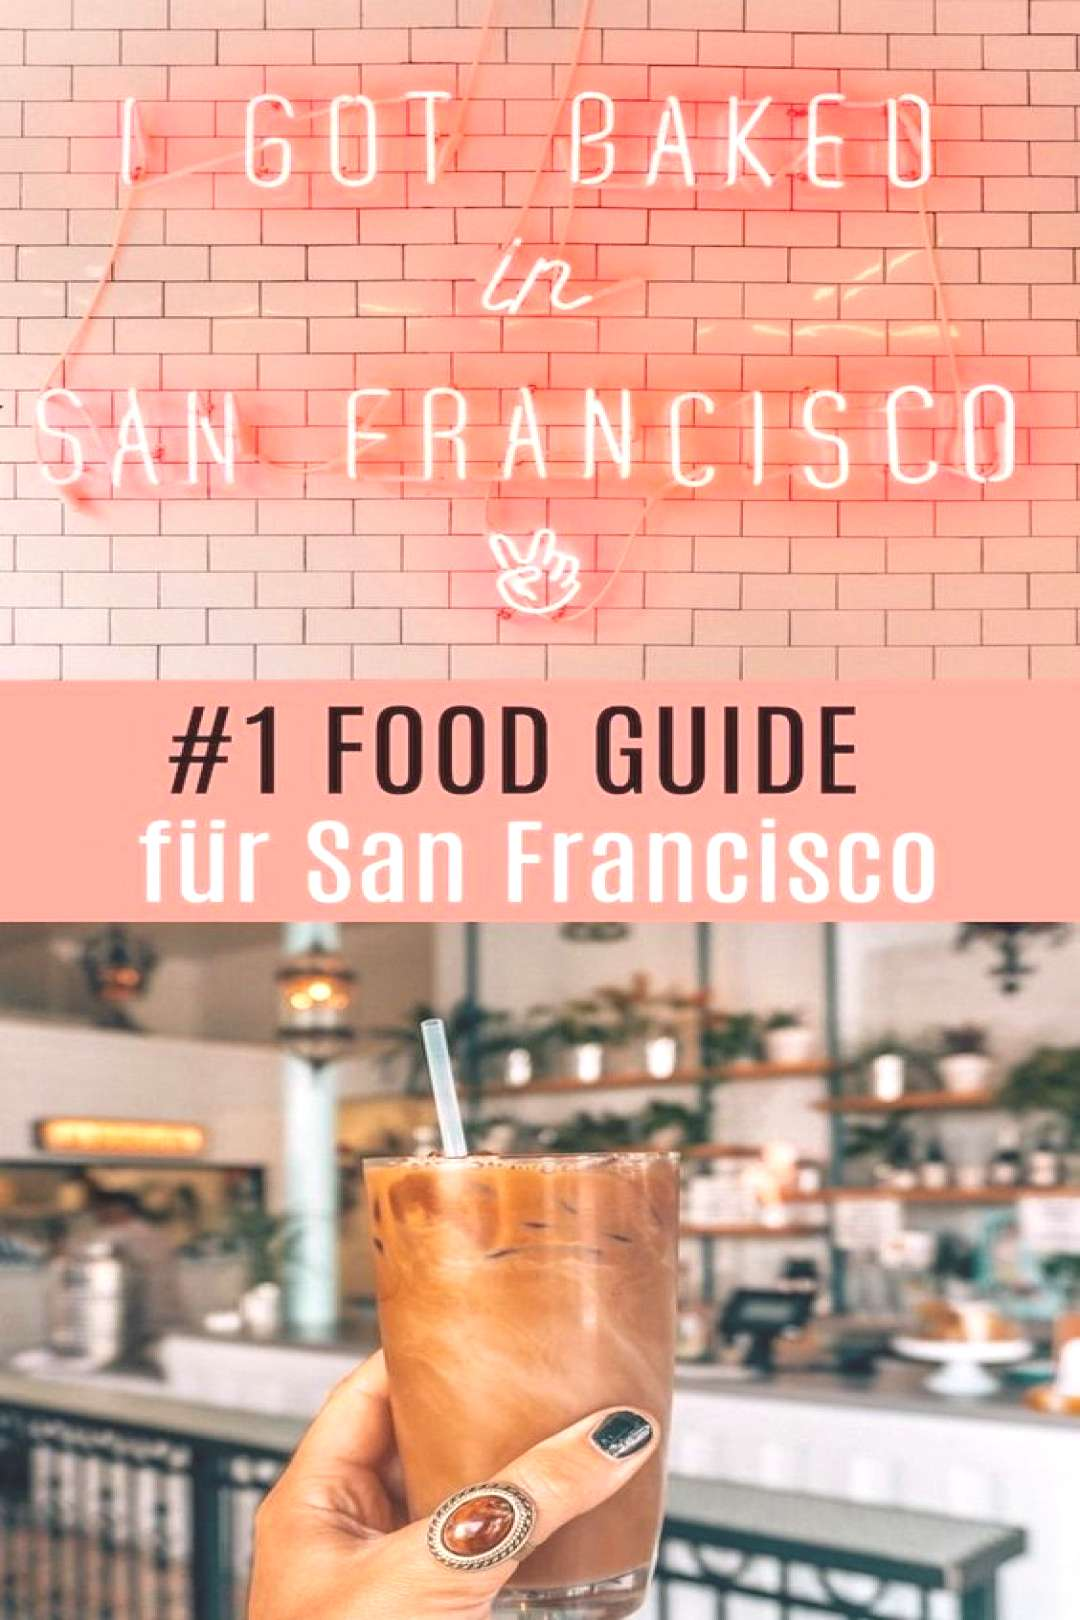 46 Food Guide: My favorite cafes and click for more ... Food Guide: My favorite cafes and restauran